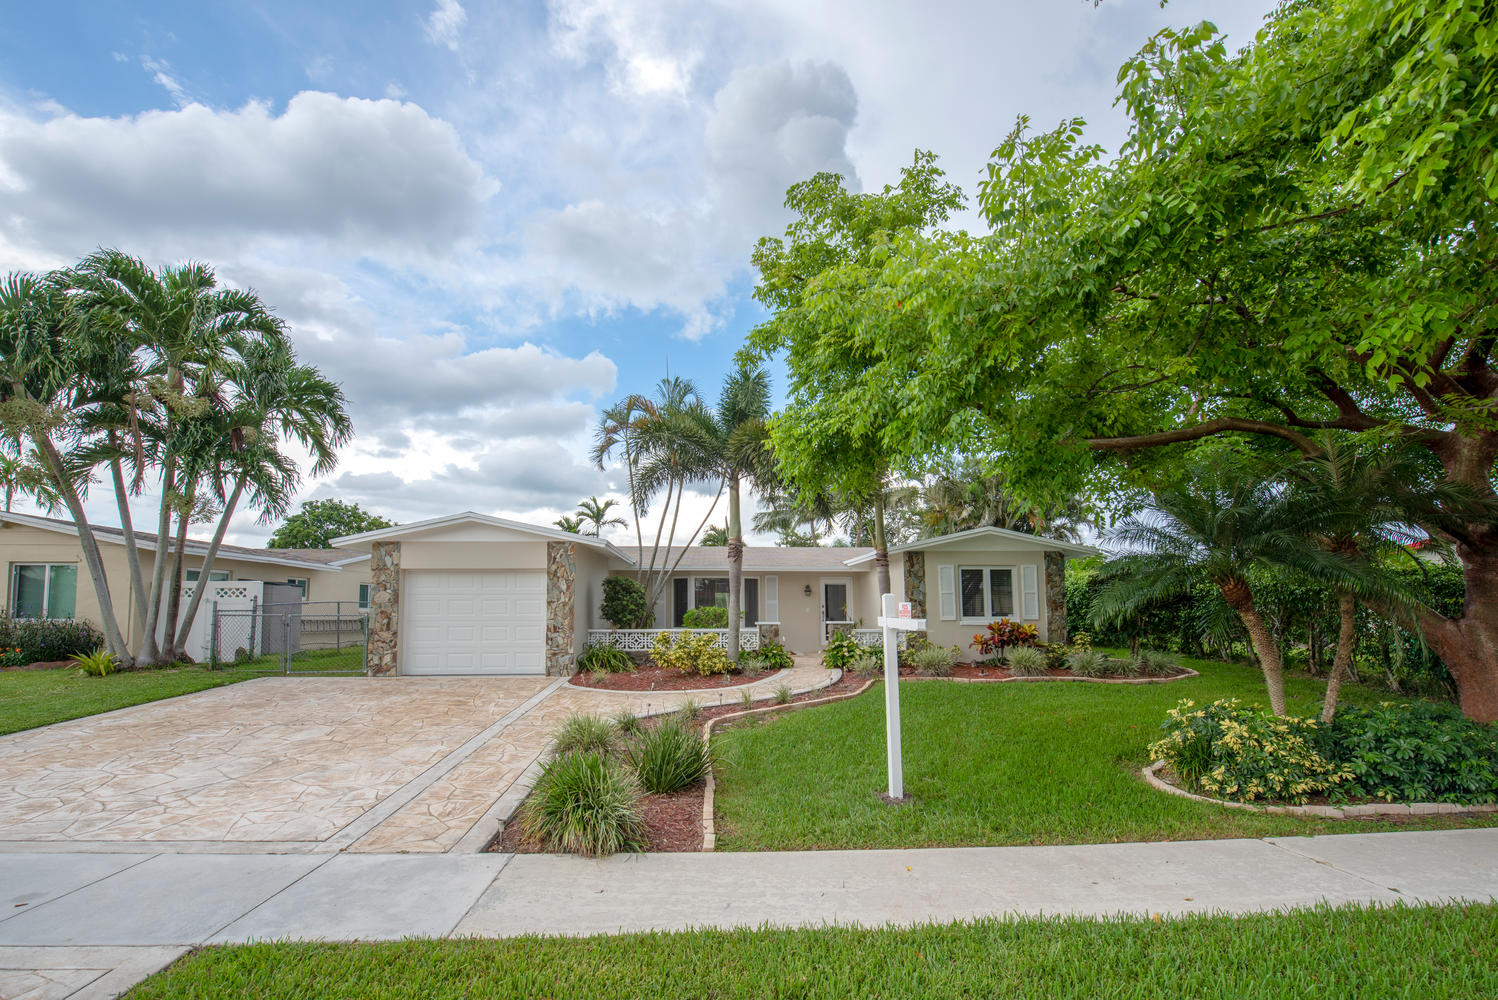 9311 NW 20th Ct Pembroke Pines-large-001-27-Exterior  Front-1499x1000-72dpi.jpg